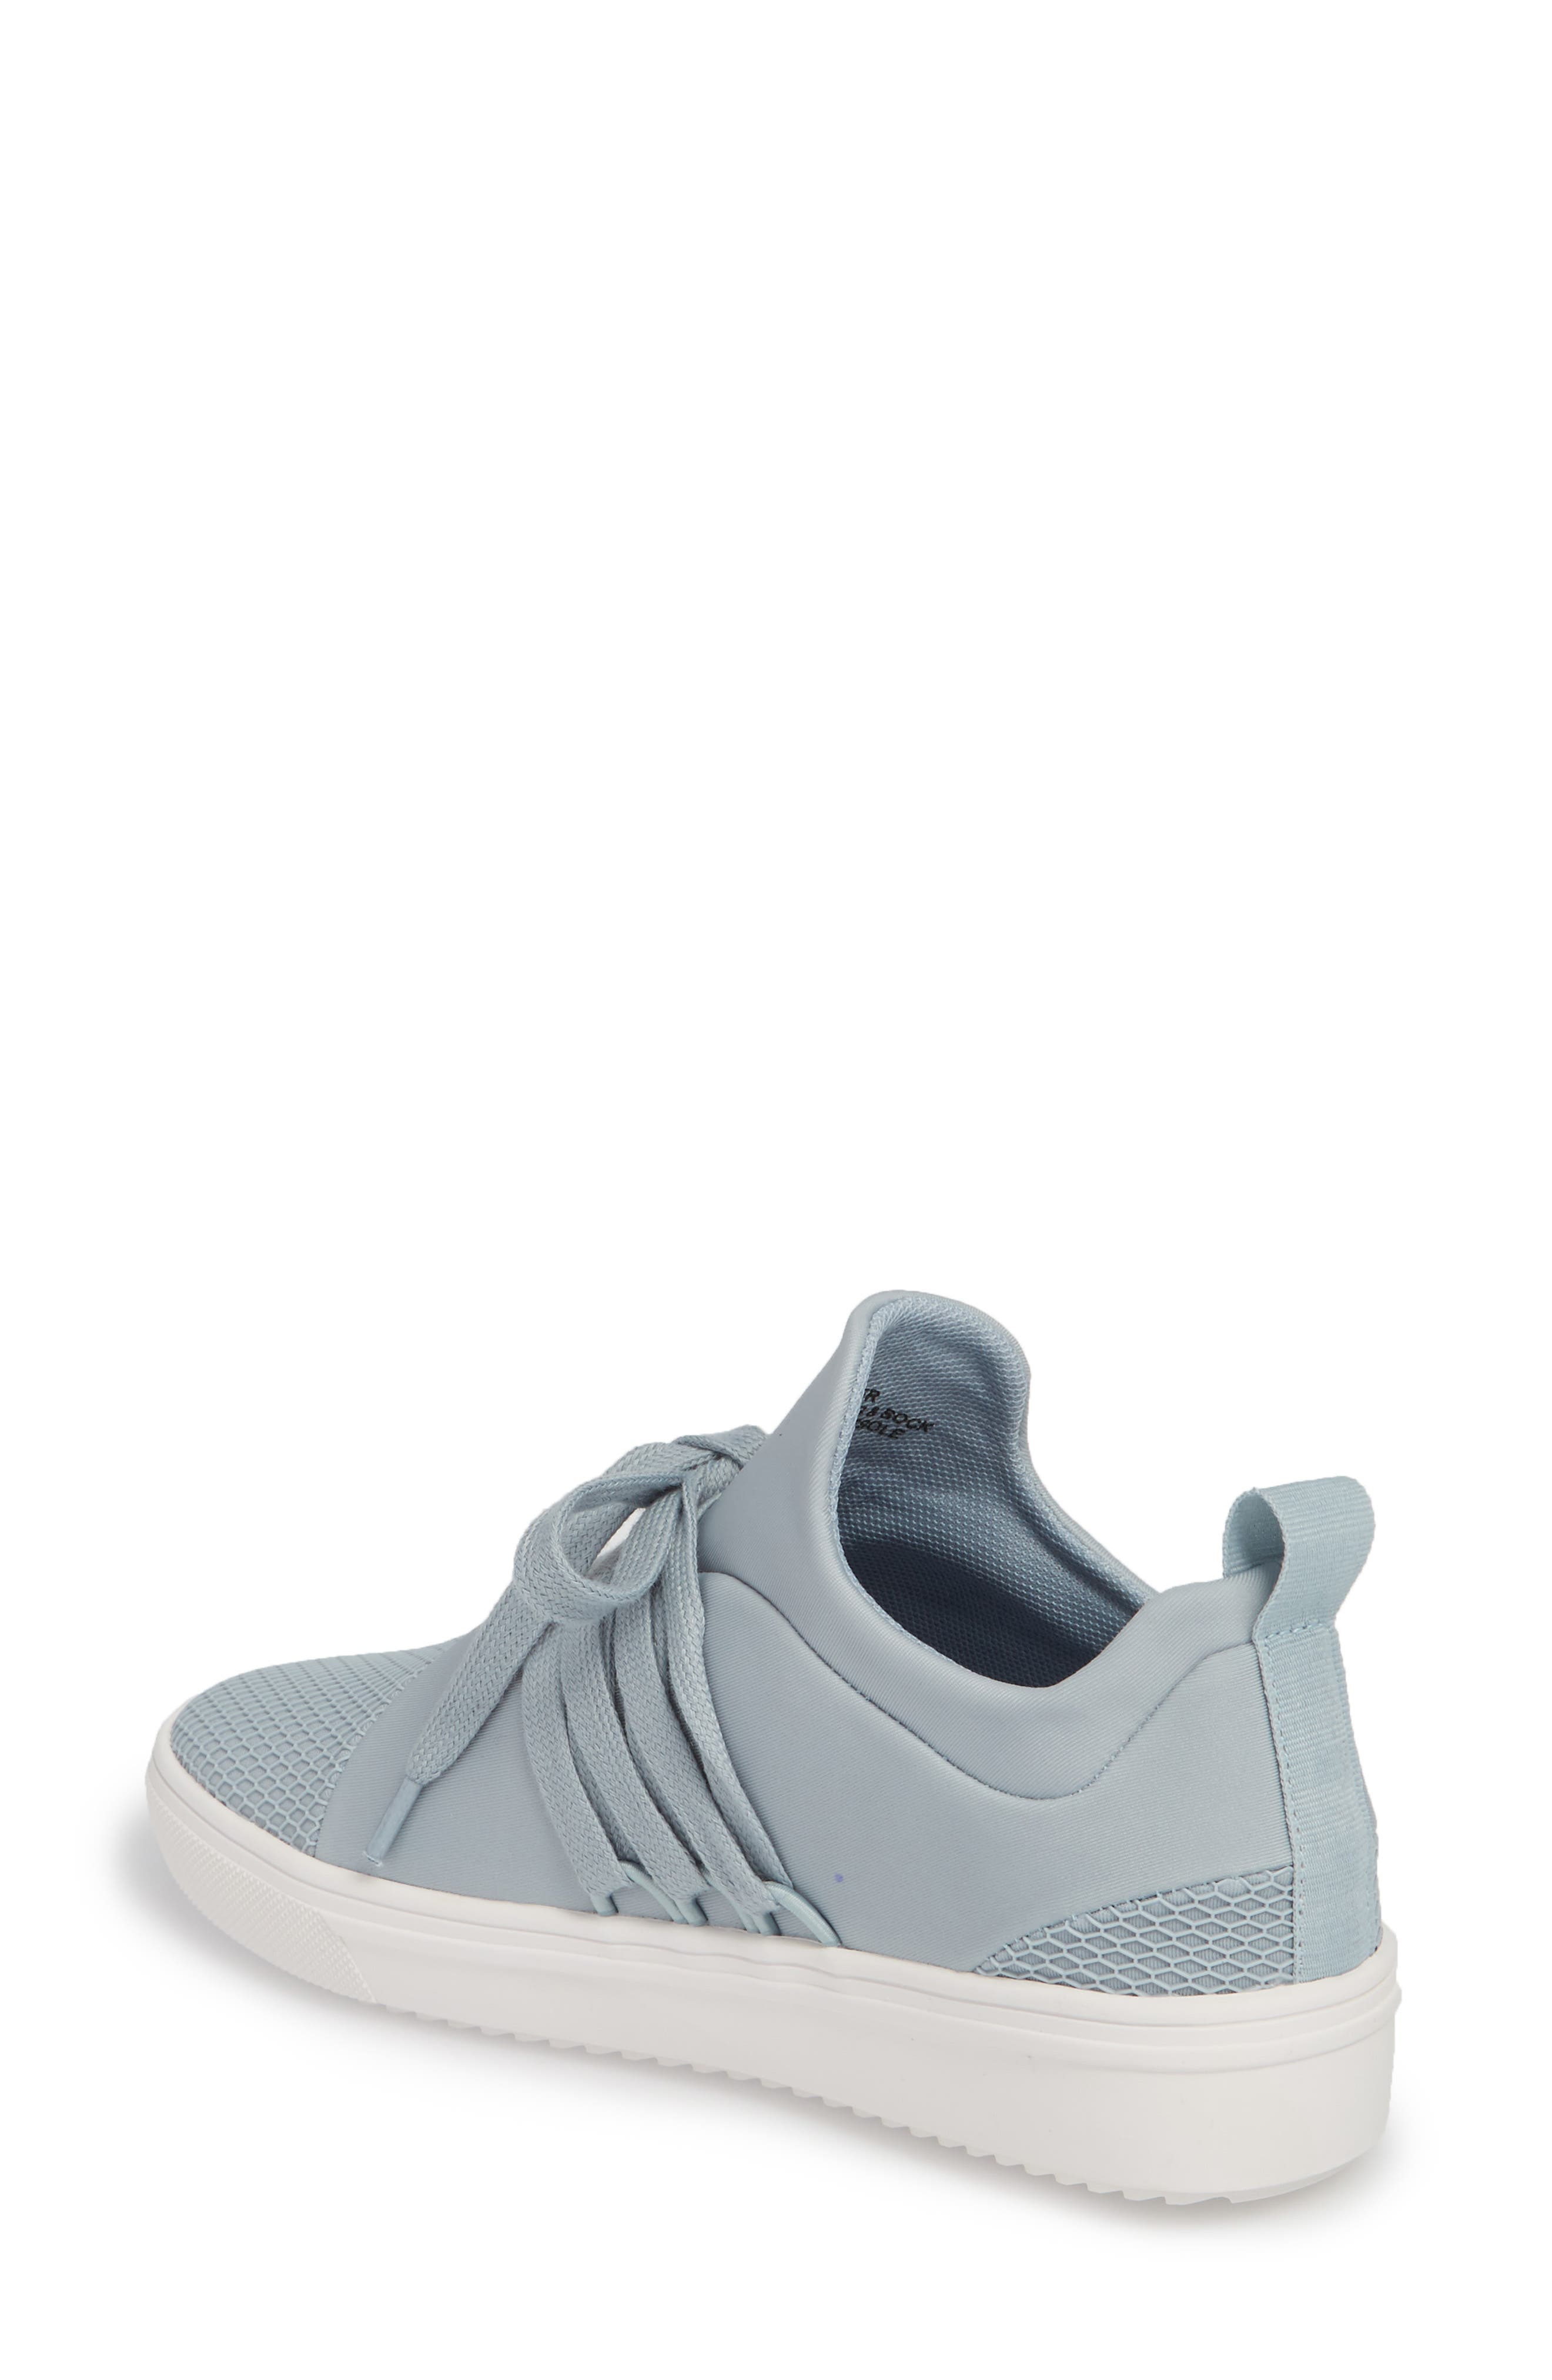 Alternate Image 2  - Steve Madden Lancer Sneaker (Women)